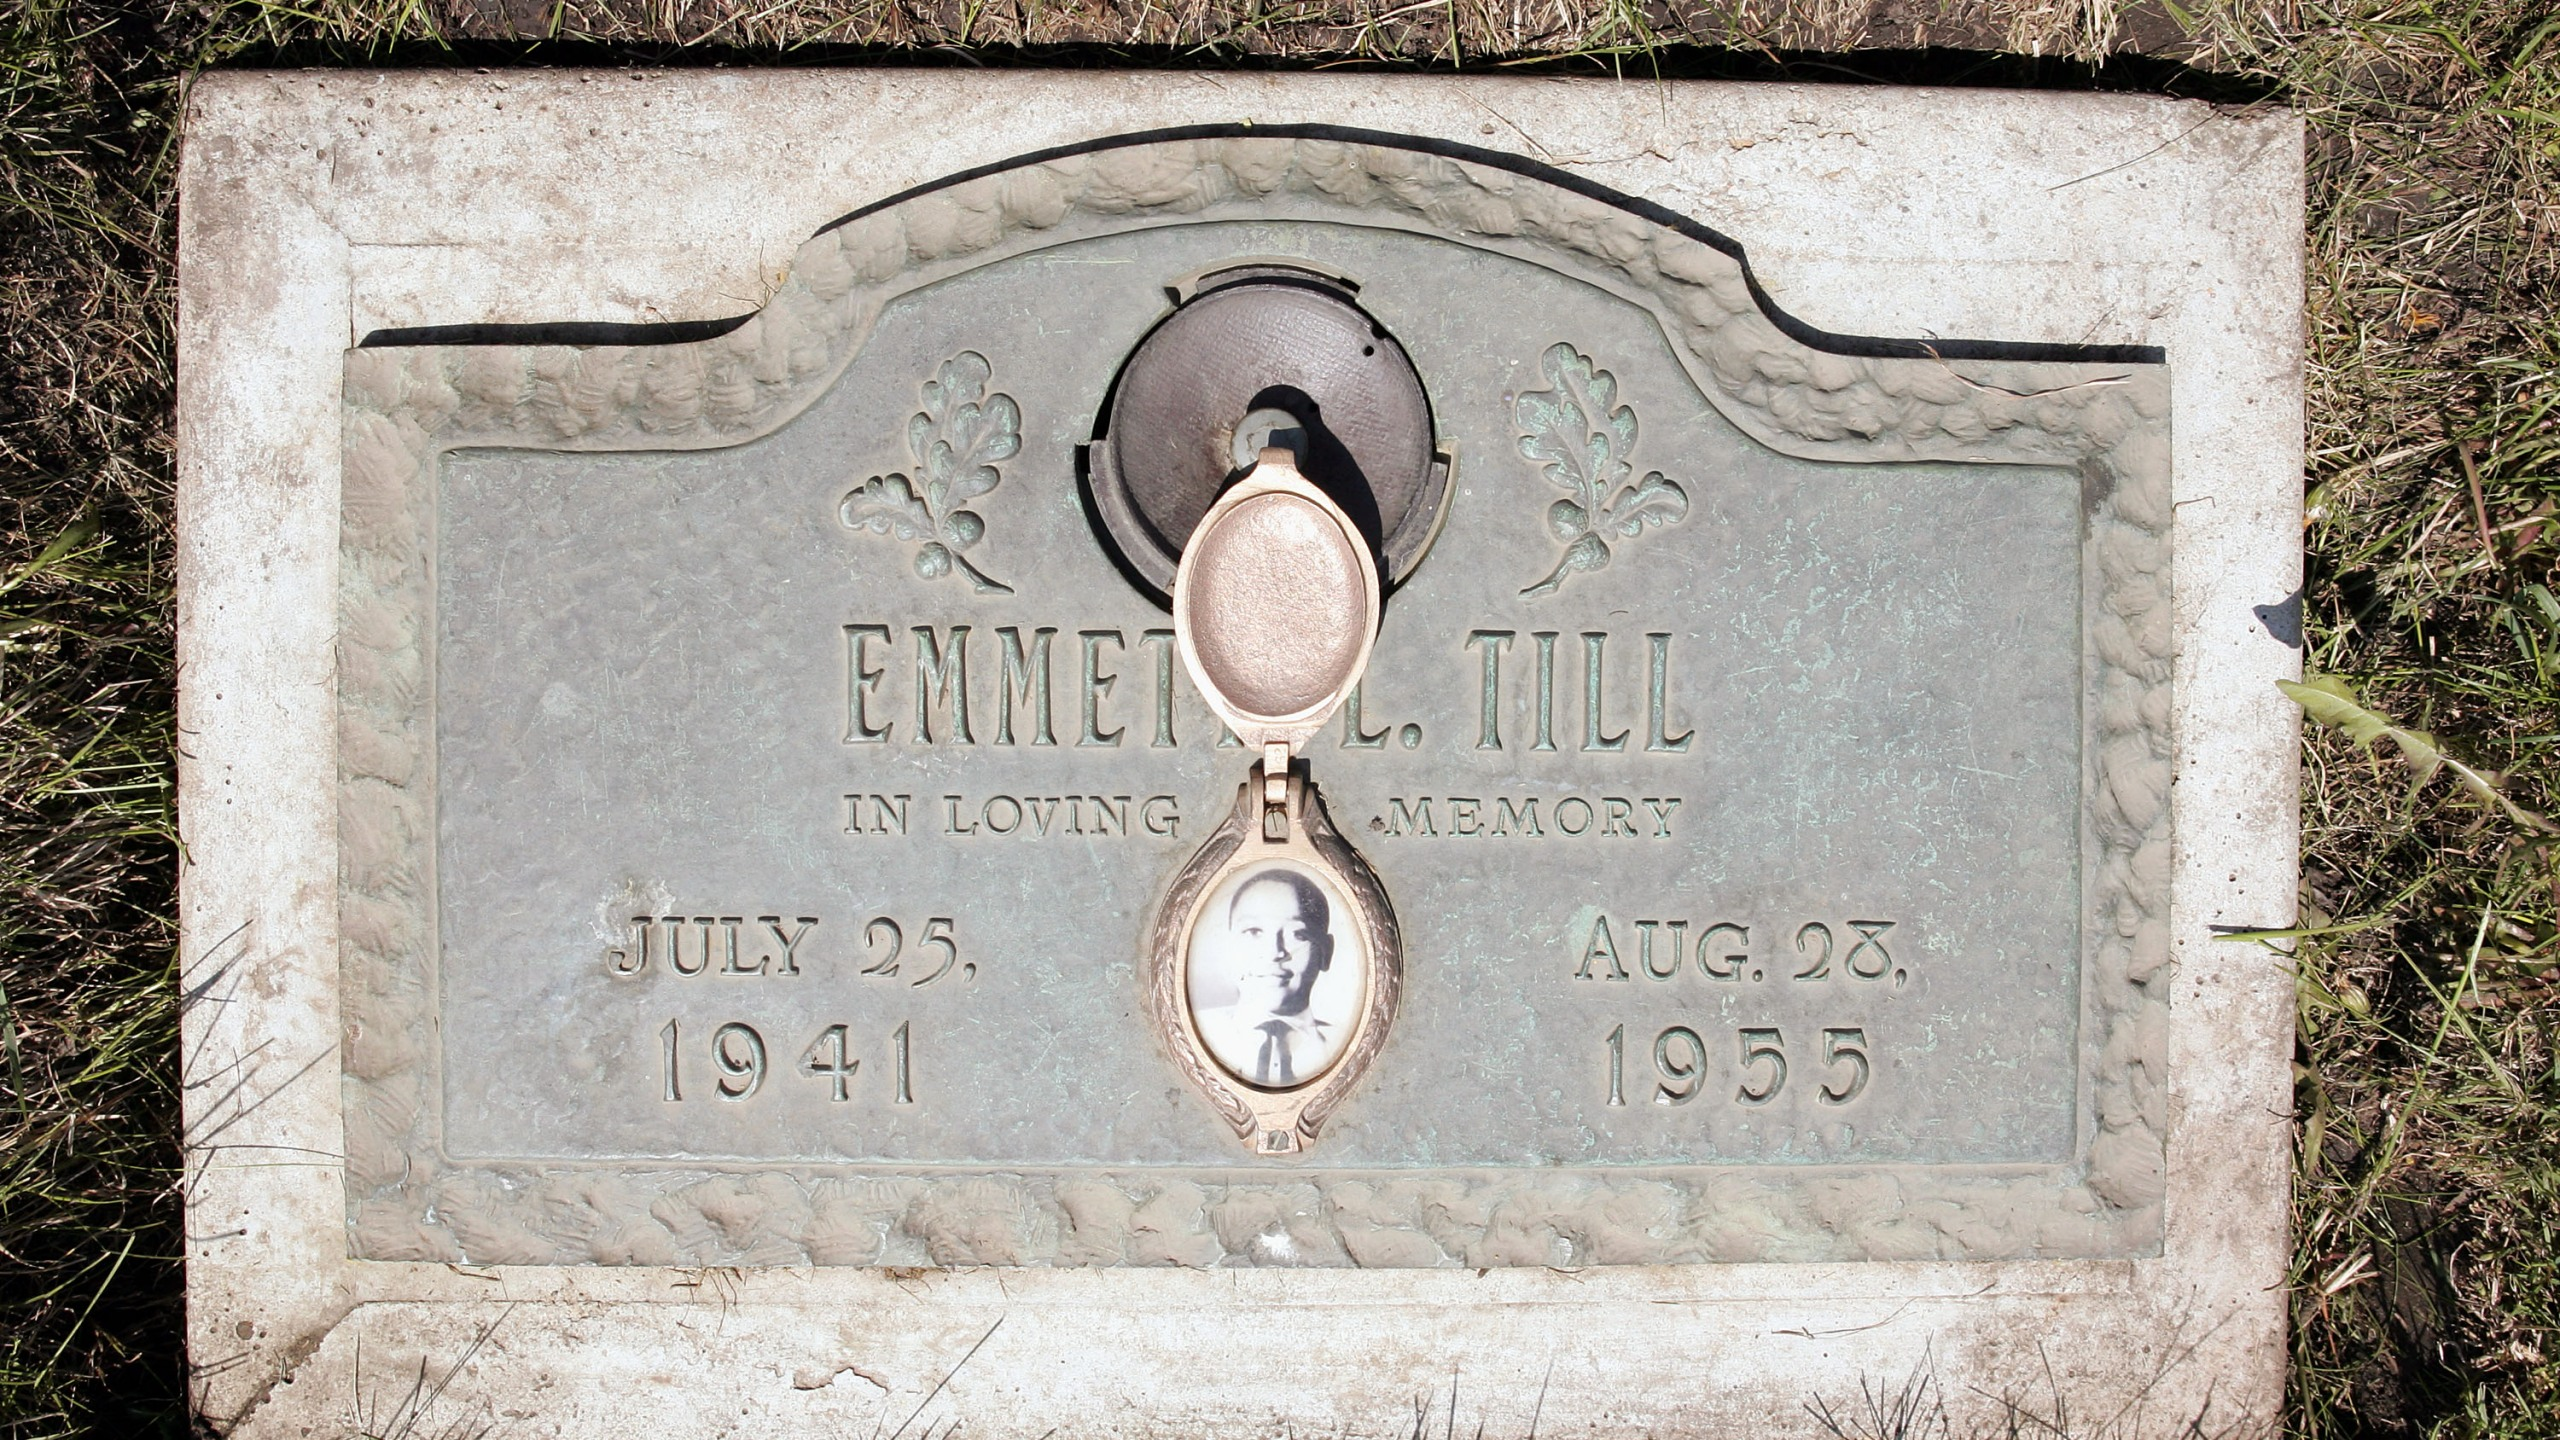 A plaque marks the gravesite of Emmett Till at Burr Oak Cemetery May 4, 2005, in Aslip, Illinois. (Scott Olson/Getty Images)